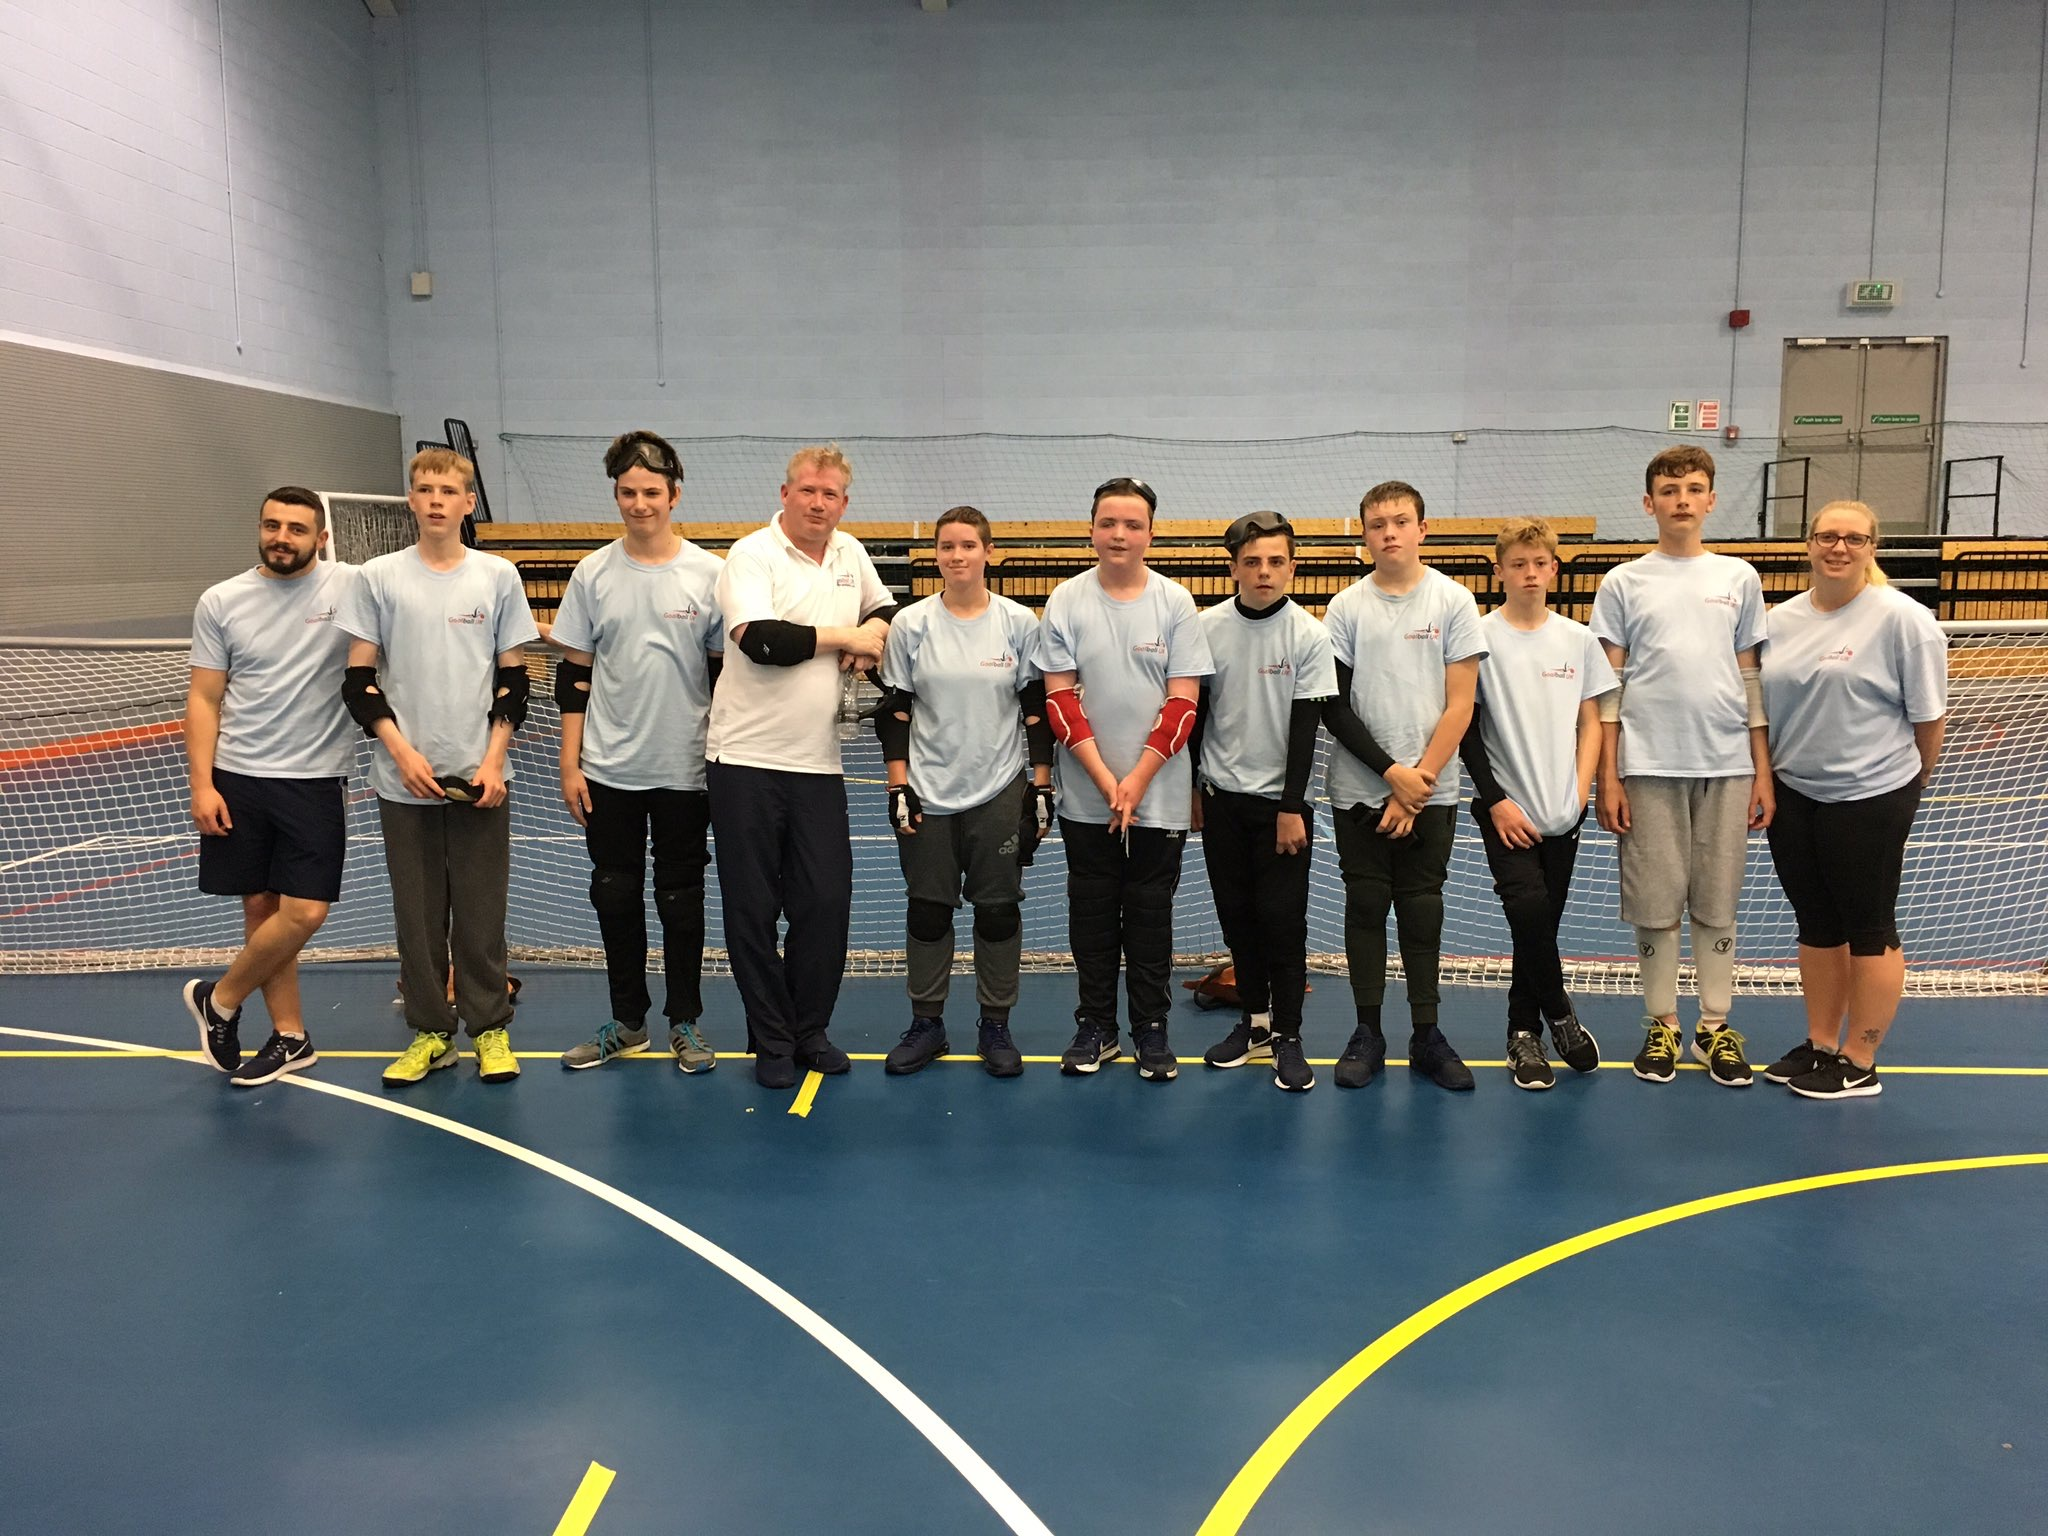 Mark winder stood with the attendees of the 2017 goalball summer camp